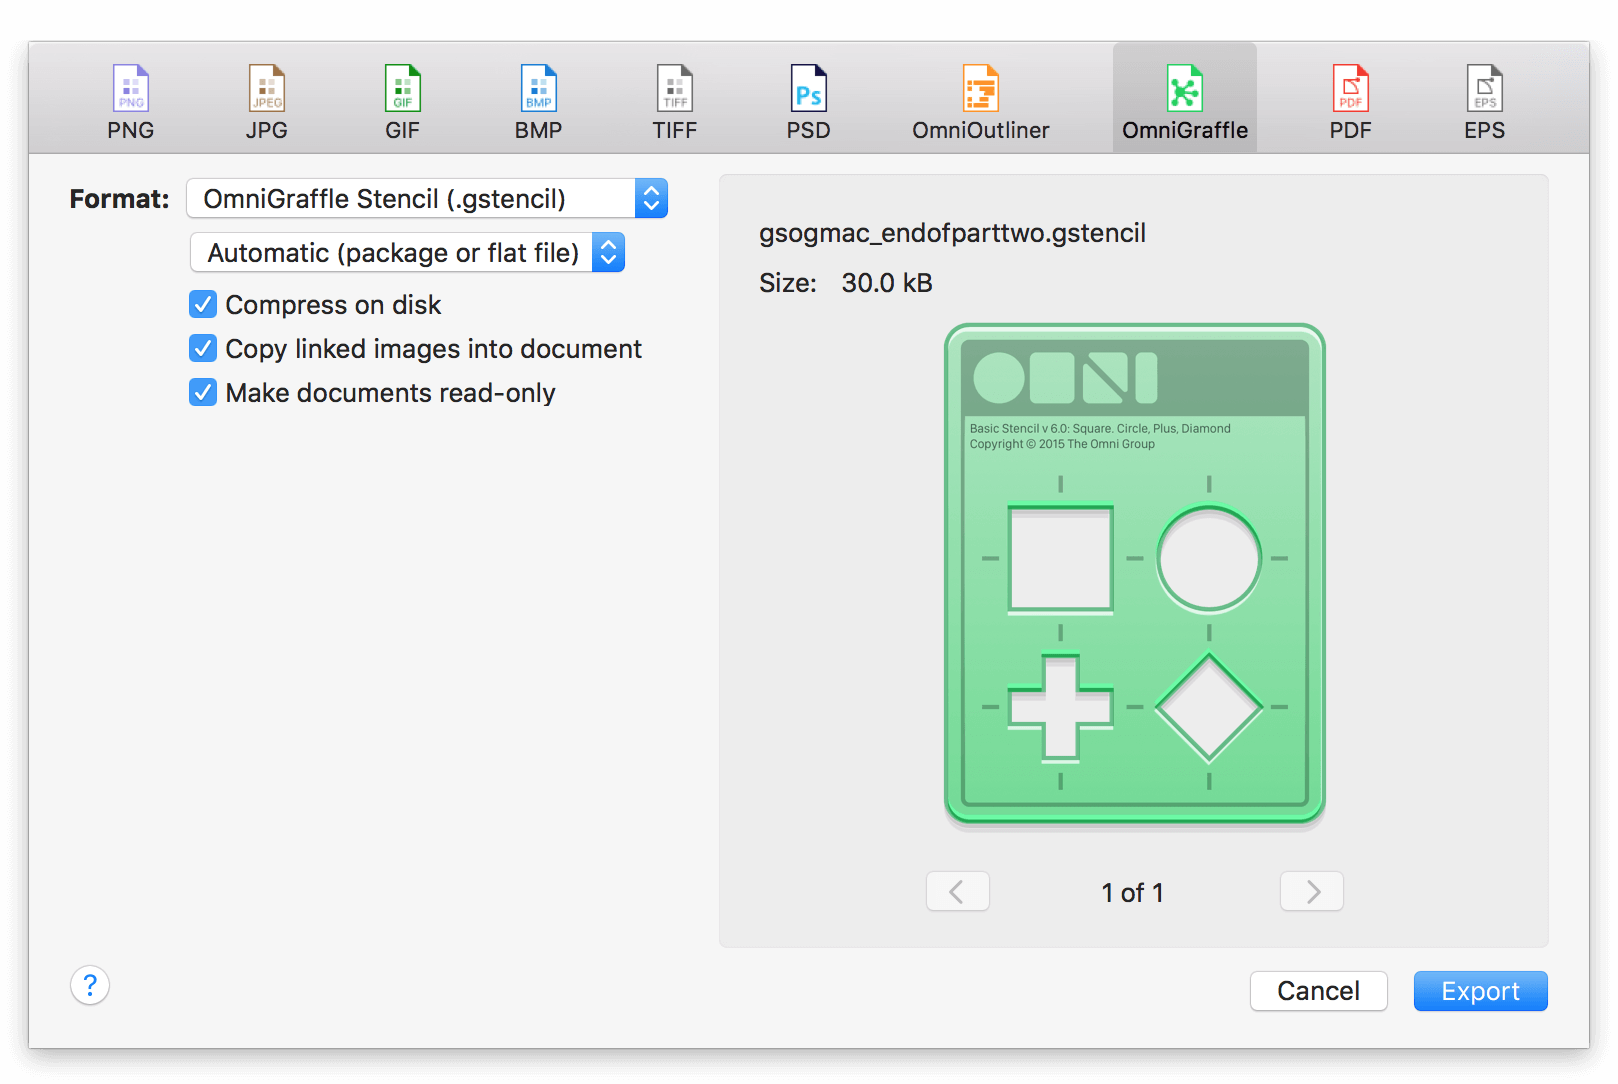 Exporting as an OmniGraffle Stencil file